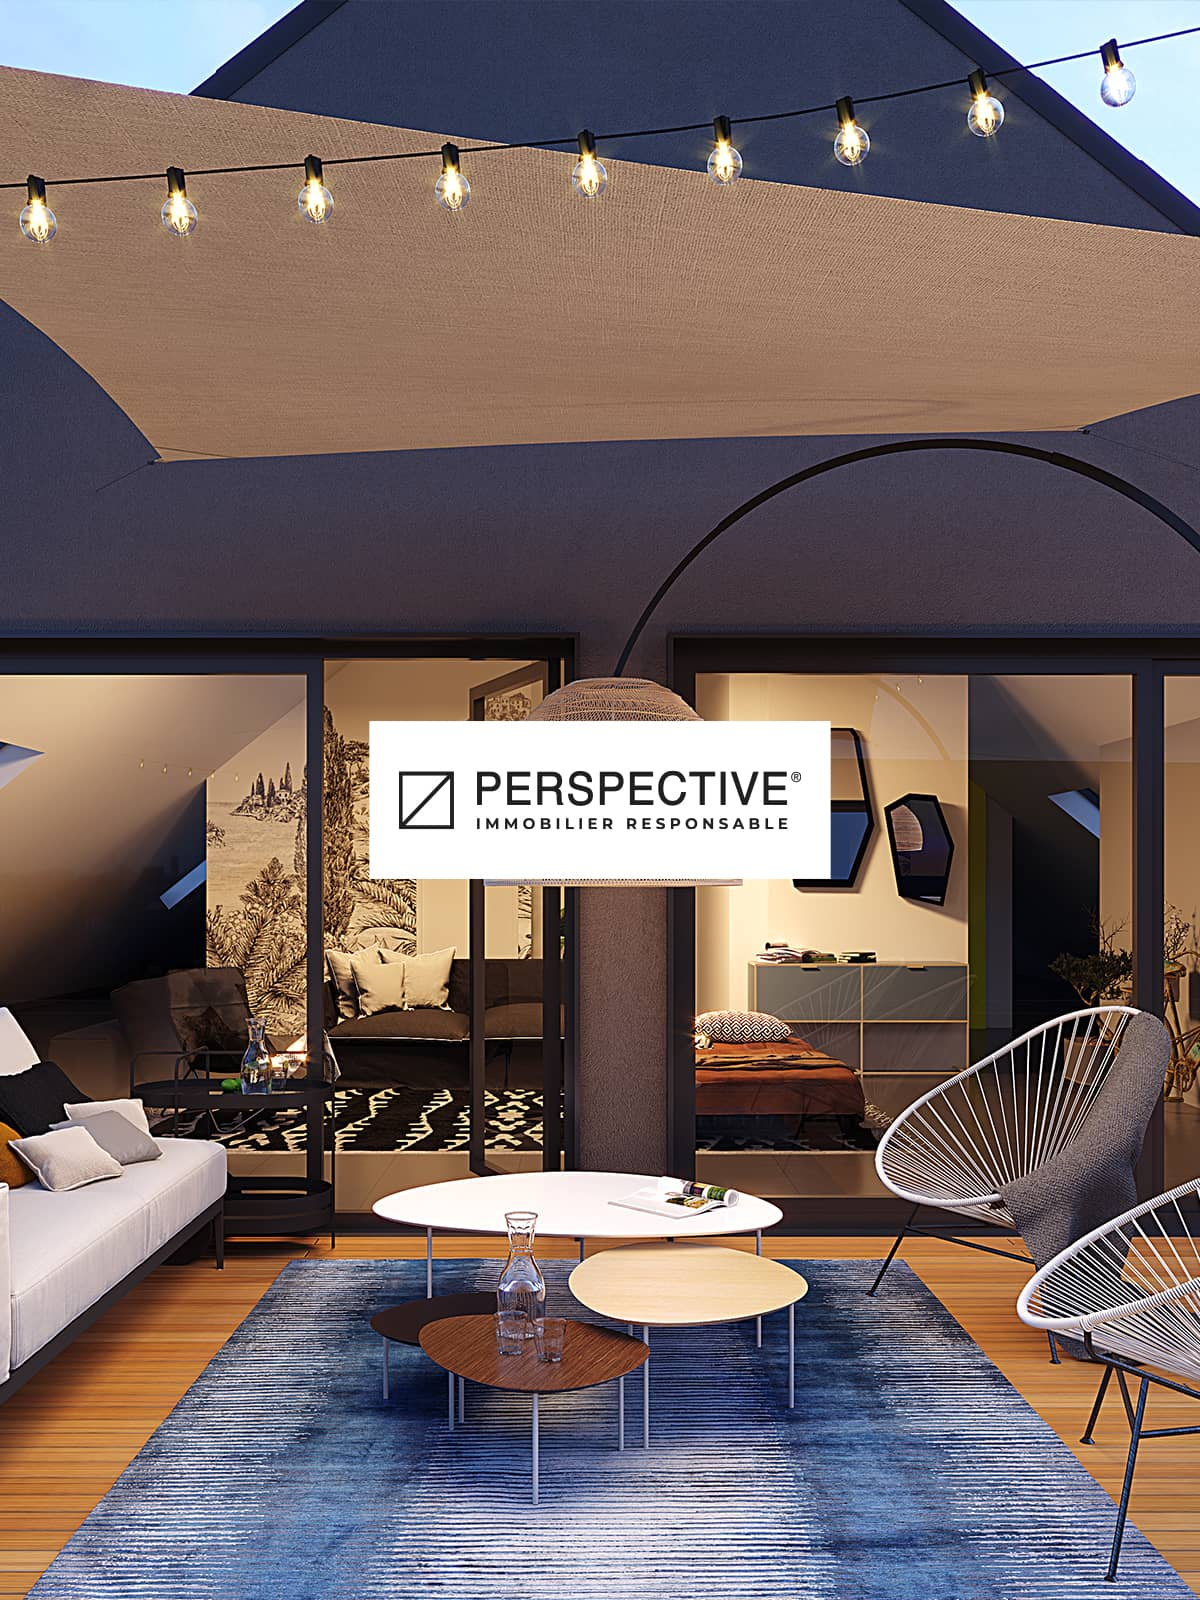 Perspective Immobilier